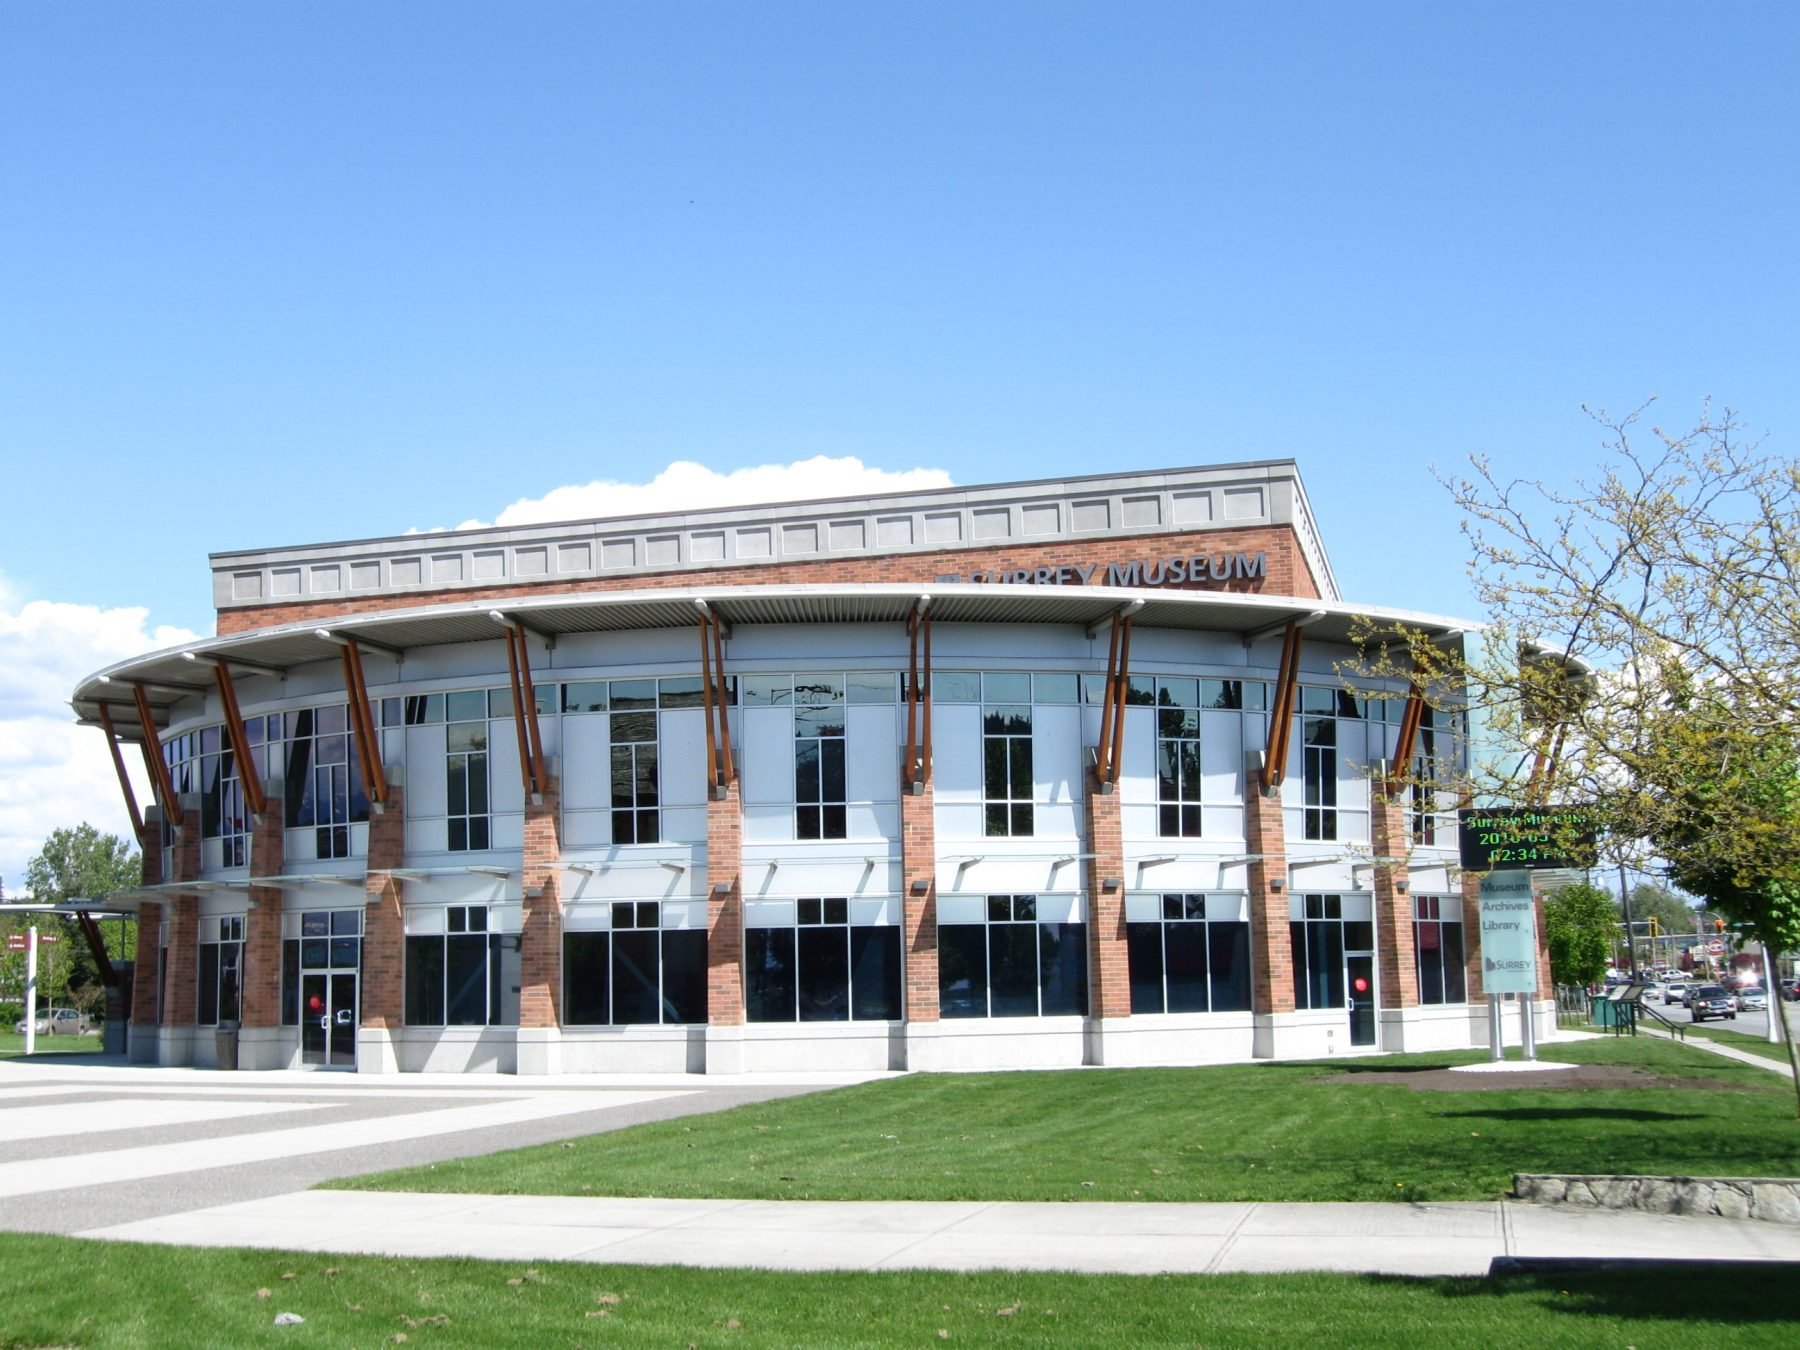 Surrey City Centre Public Library